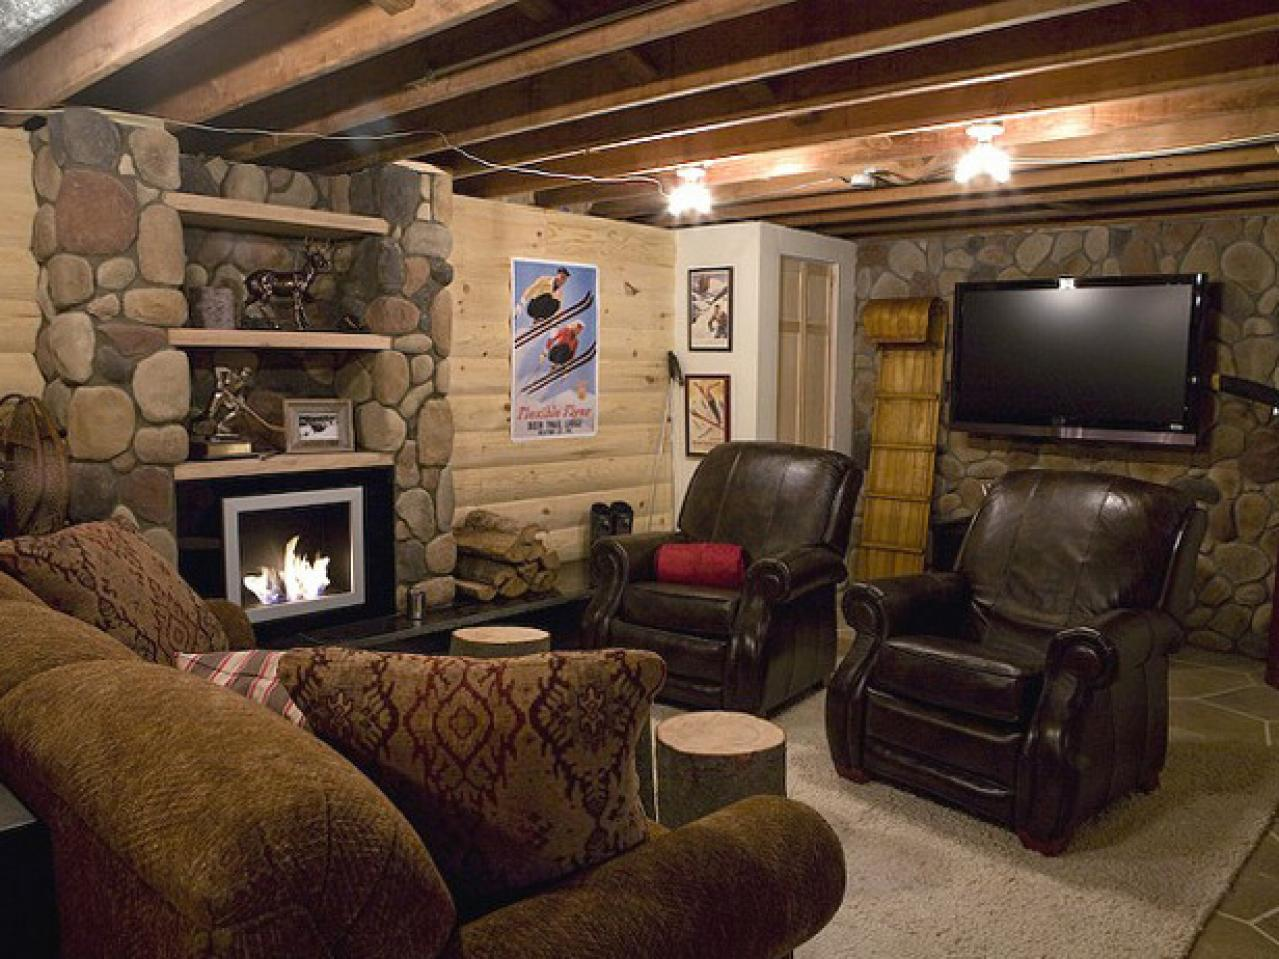 Awesome rooms from man caves diy home decor and Man cave ideas unfinished basement